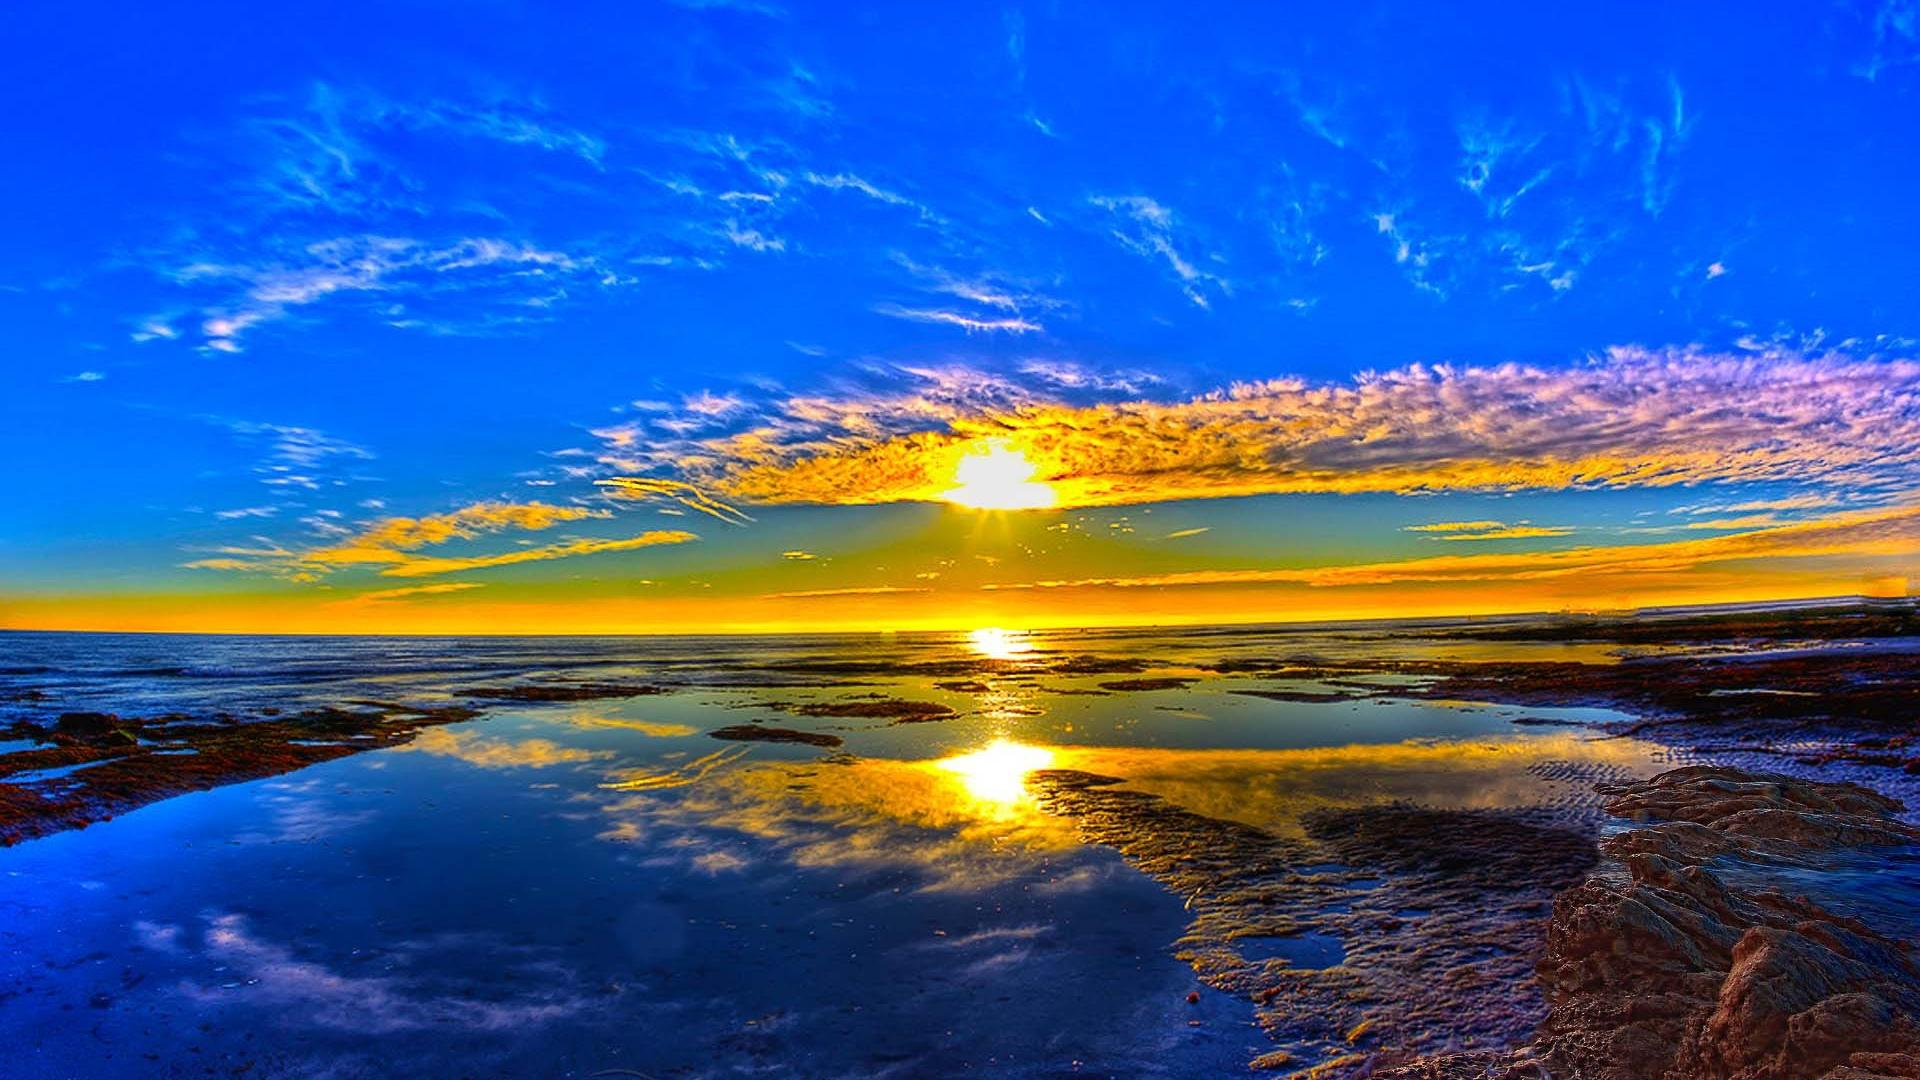 Sunrise Wallpaper · Sunrise Wallpaper · Sunrise Wallpaper ...